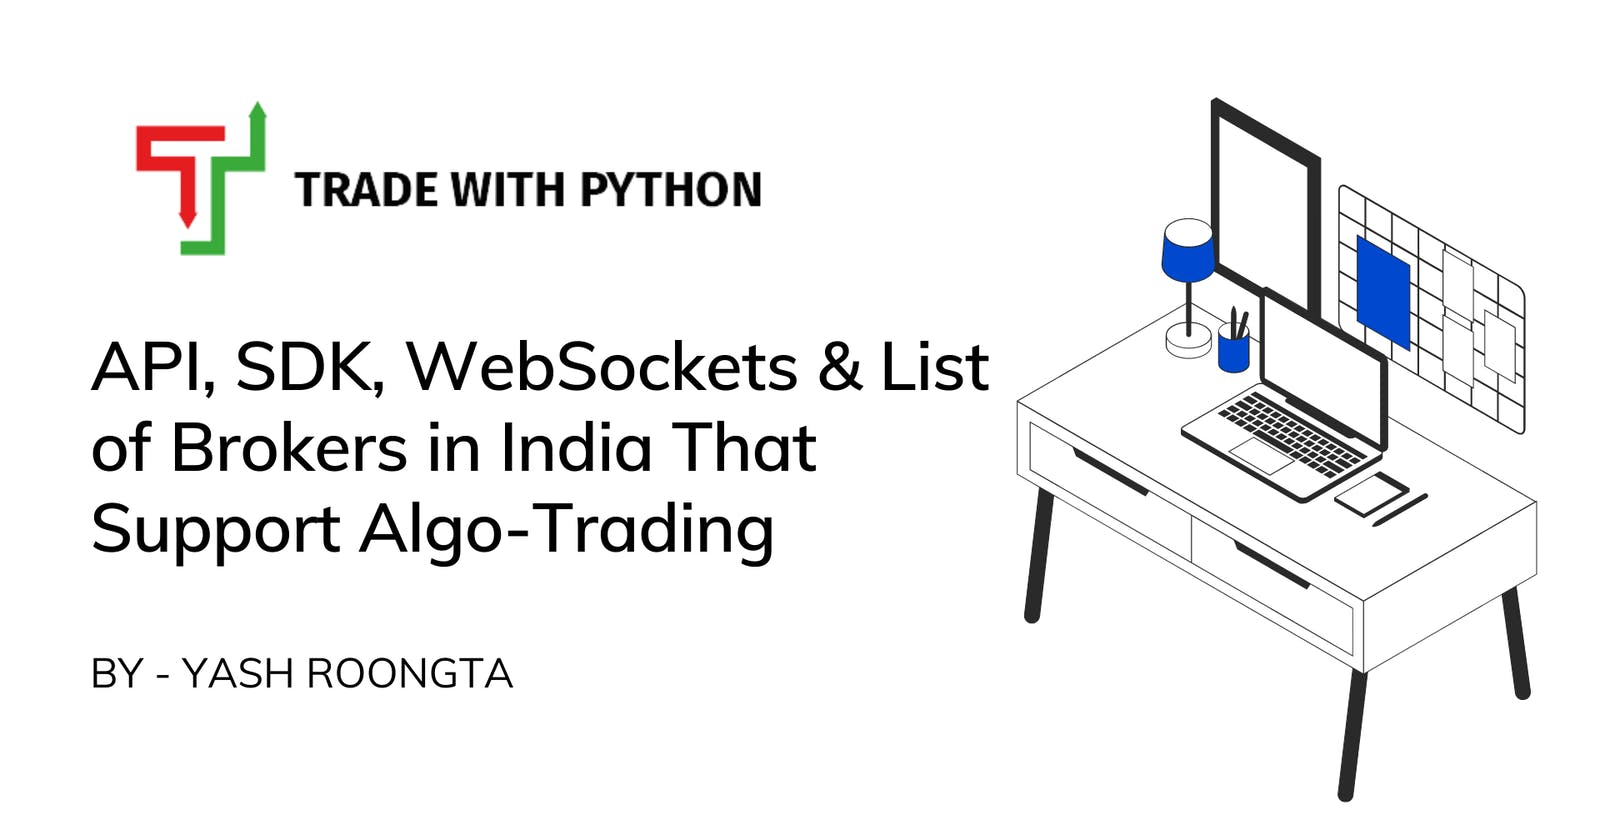 API, SDK, WebSockets & List of Brokers in India That Support Algo Trading